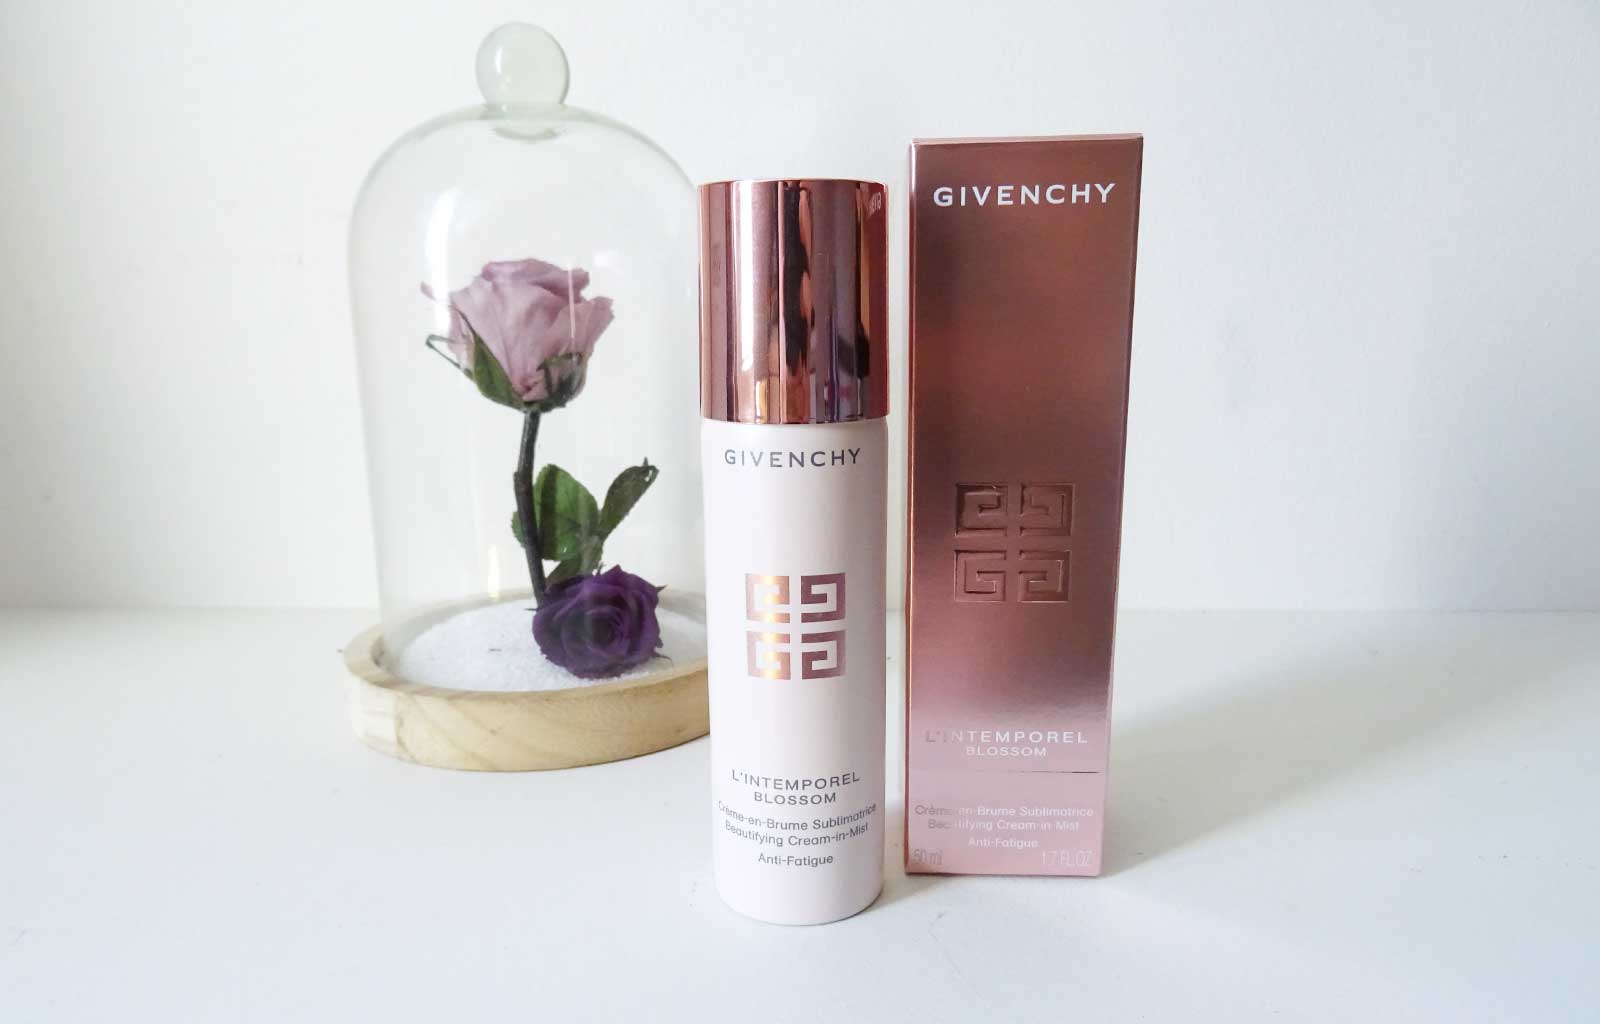 Crème-en-Brume sublimatrice anti-fatigue Givenchy